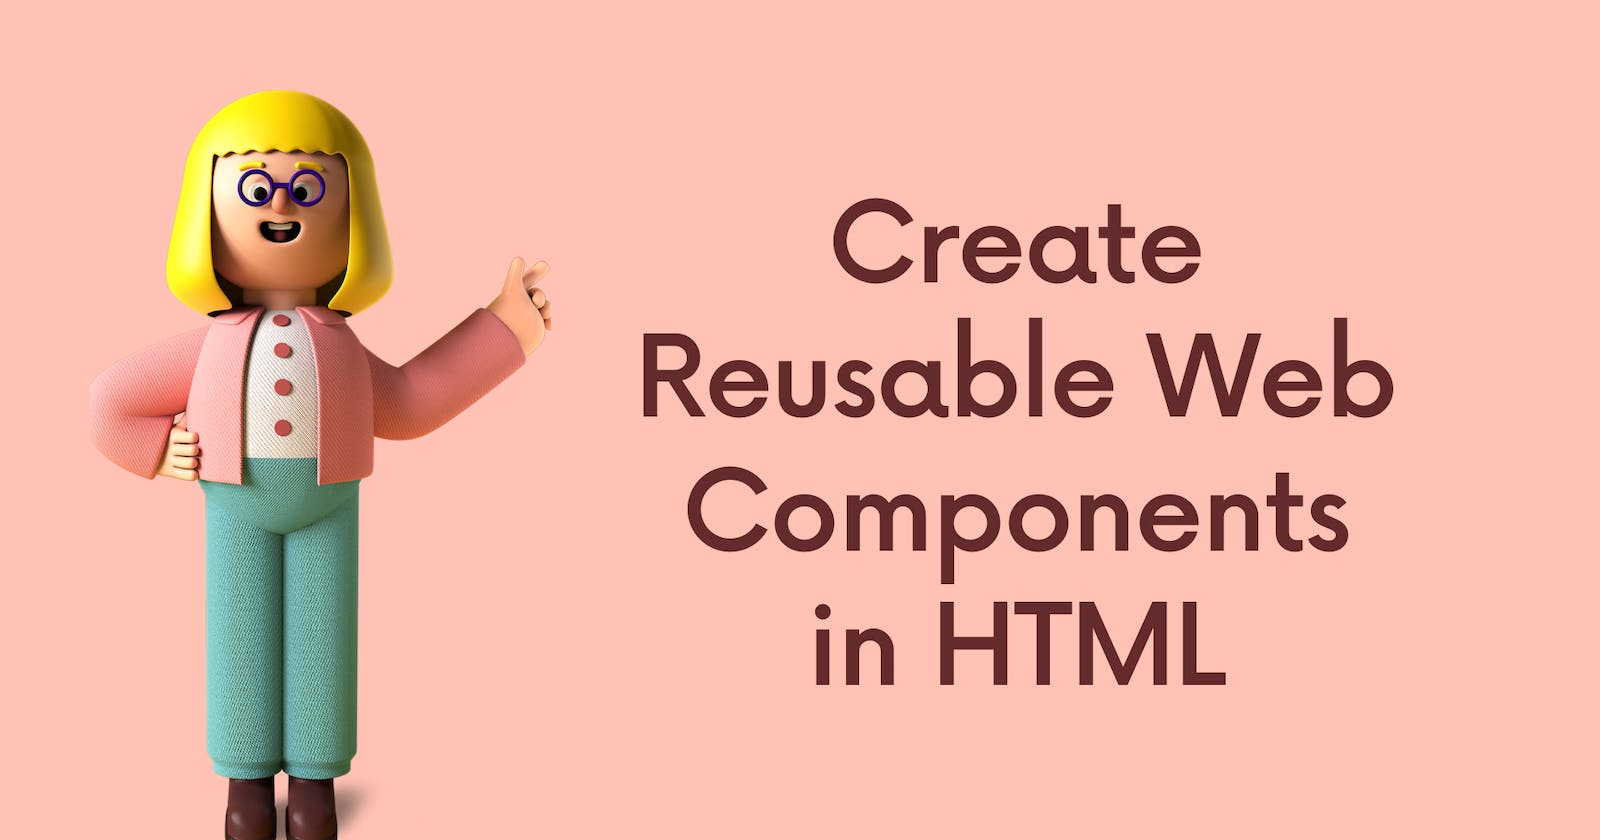 Create Reusable Web Components in HTML